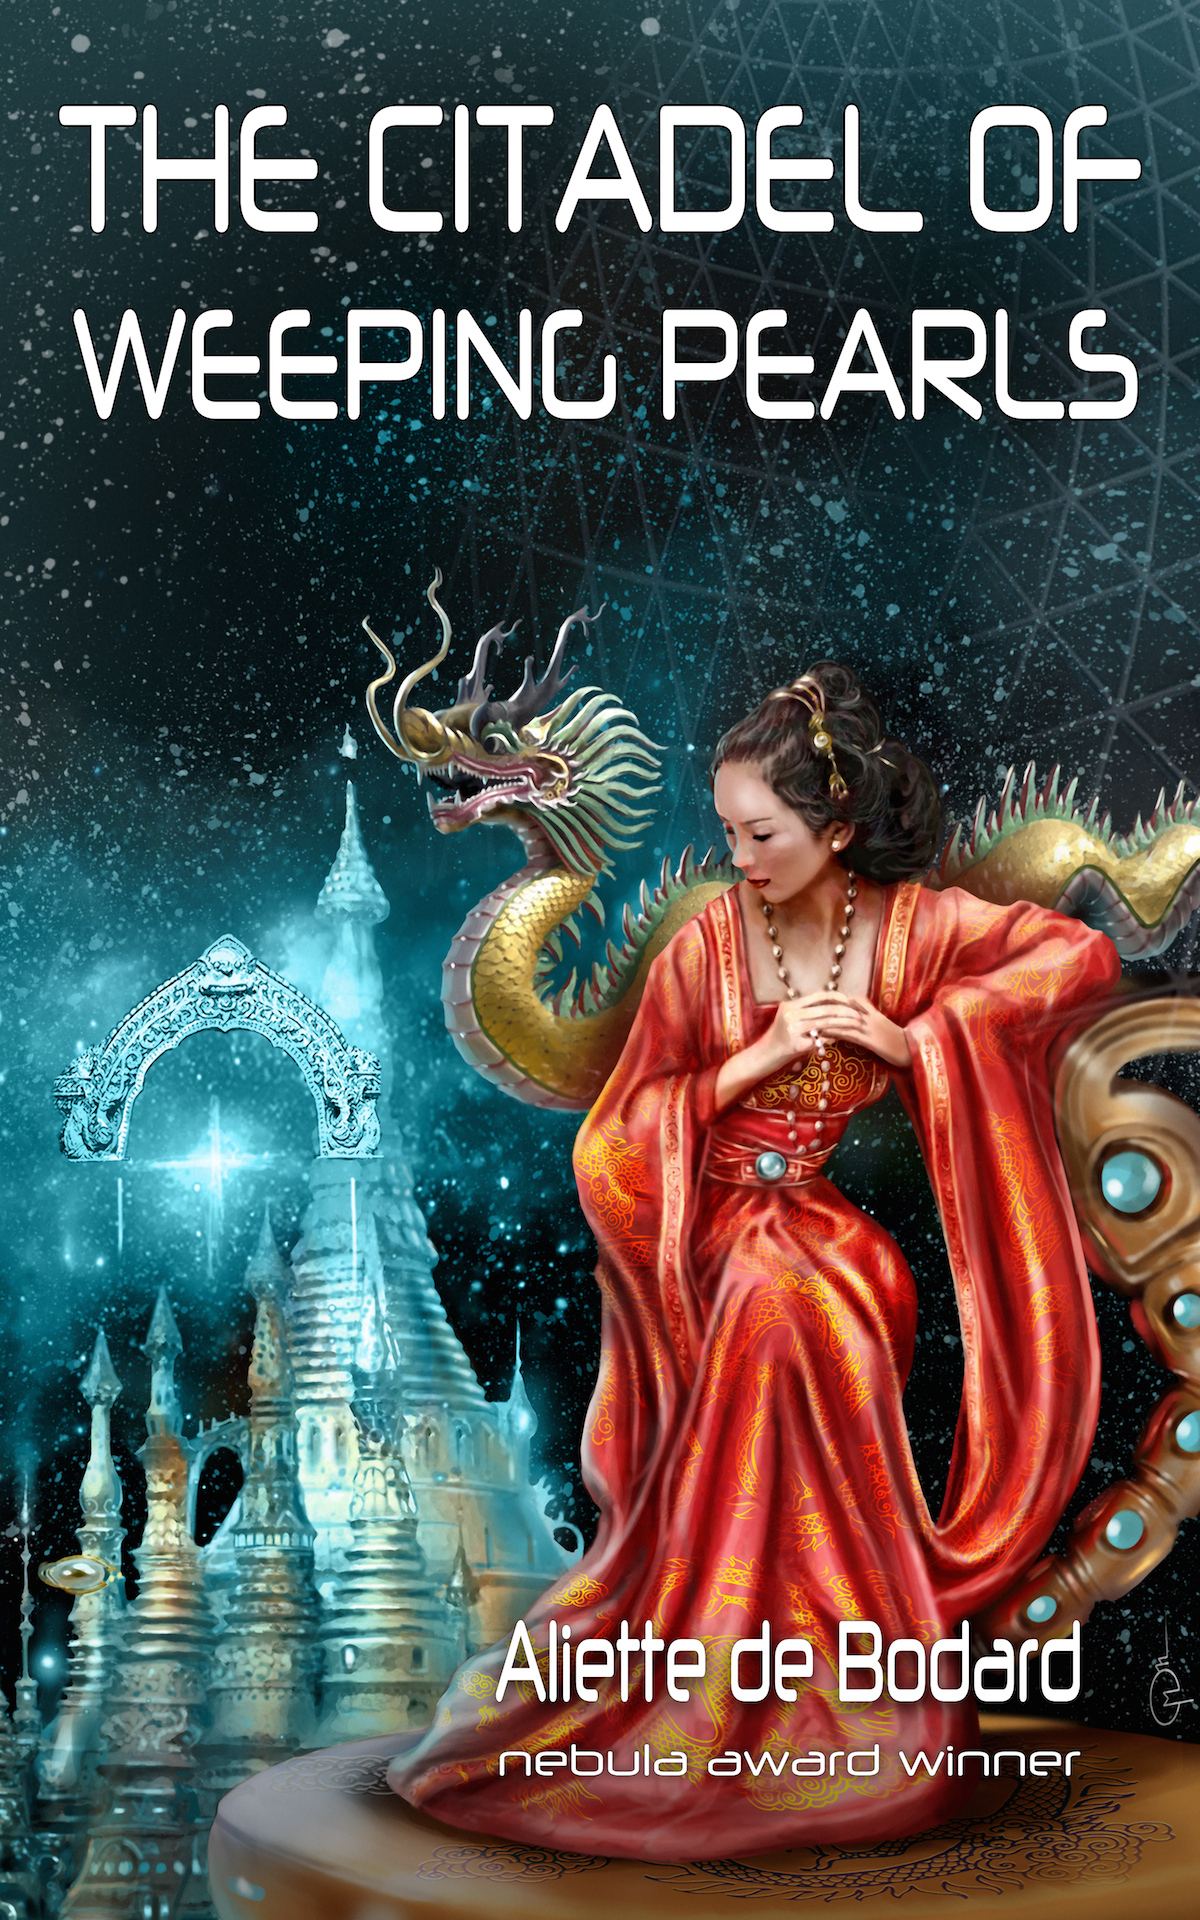 The Citadel of Weeping Pearls by Aliette de Bodard